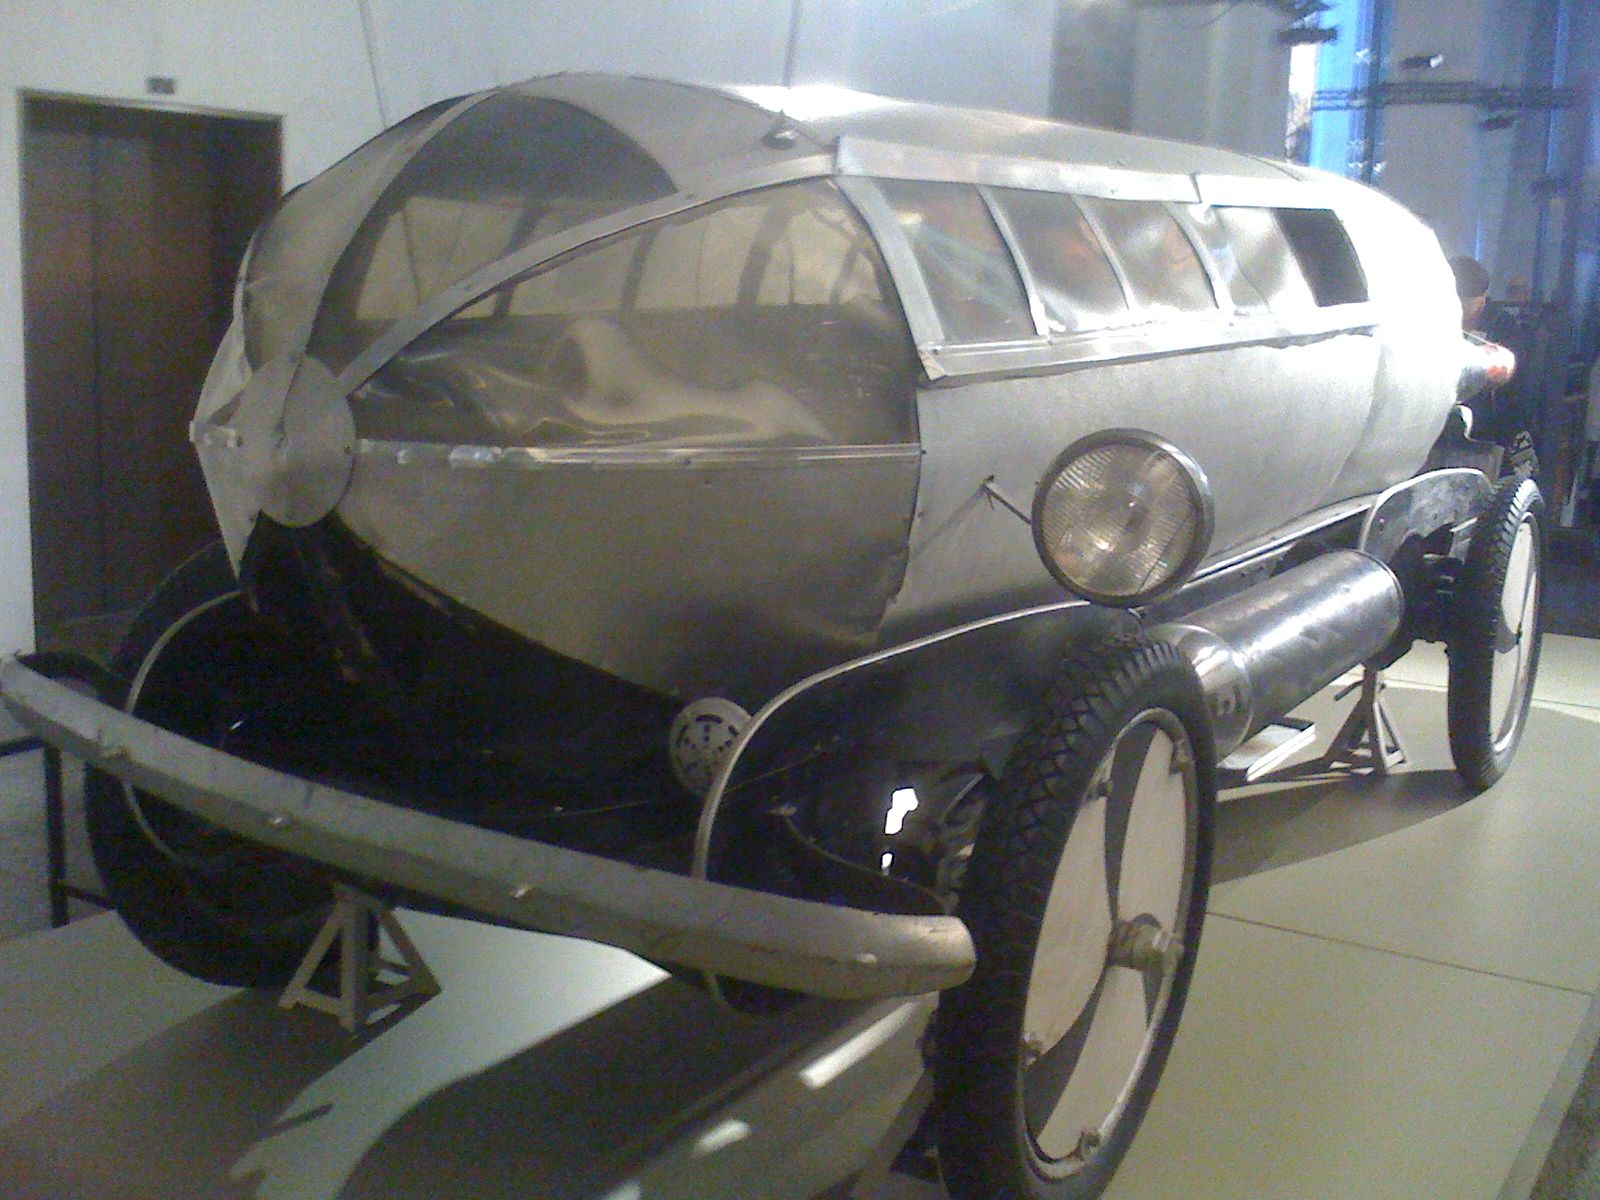 File:Rocket car from about 100 years ago 1.jpg - Wikimedia Commons